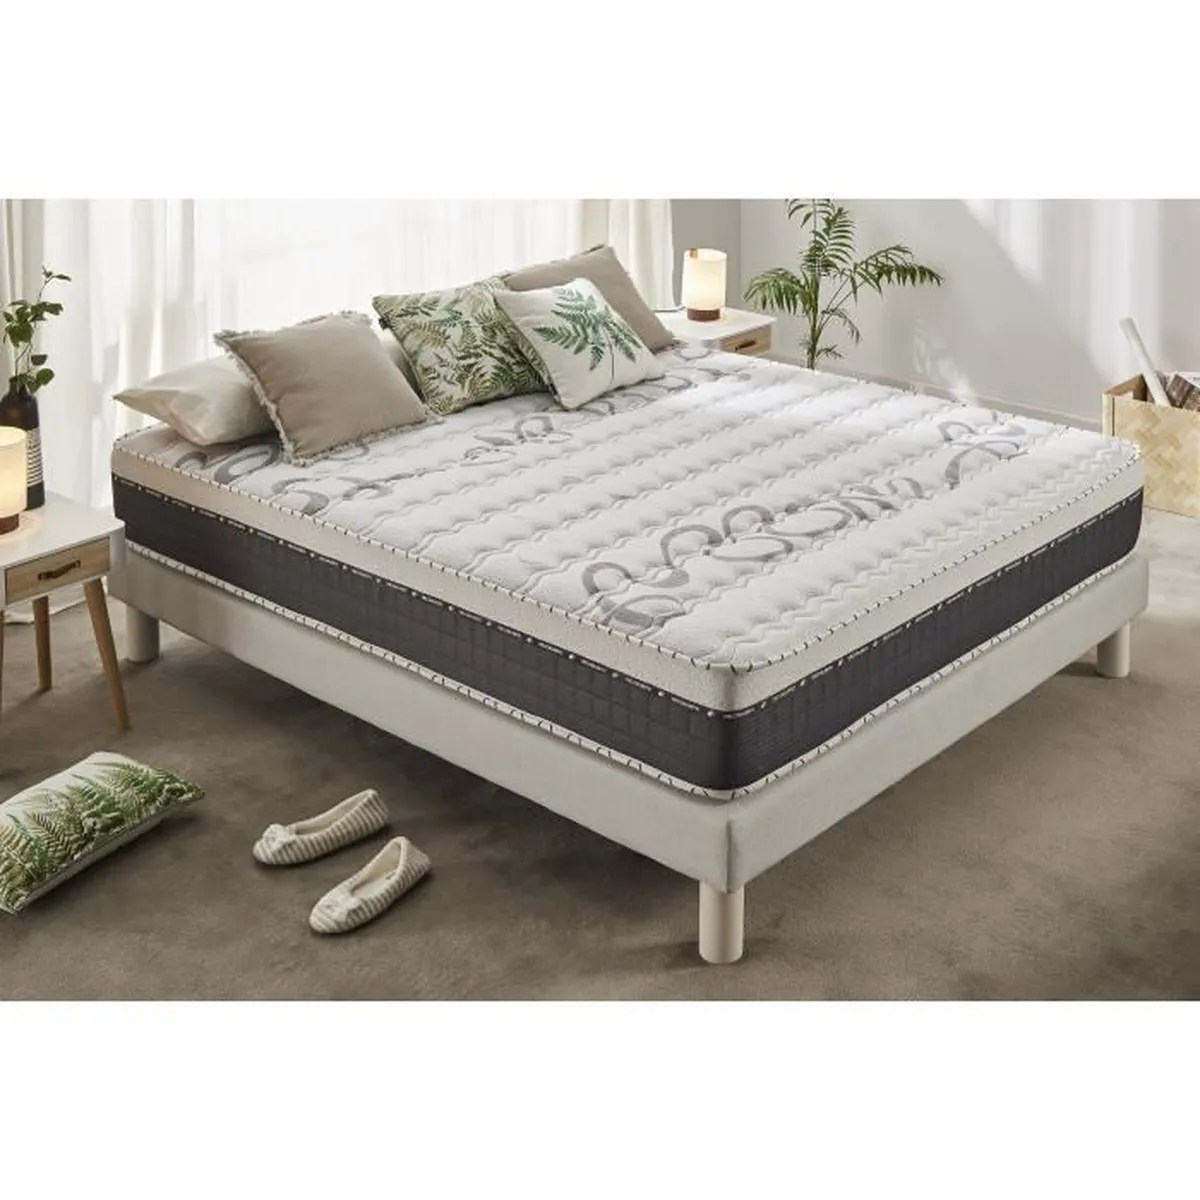 Matelas Latex Memoire De Forme 160x200 Matelas 160x200 Cm Top Caress Mémoire De Forme Viscotex Mousse Blue Latex Confort Haut De Gamme